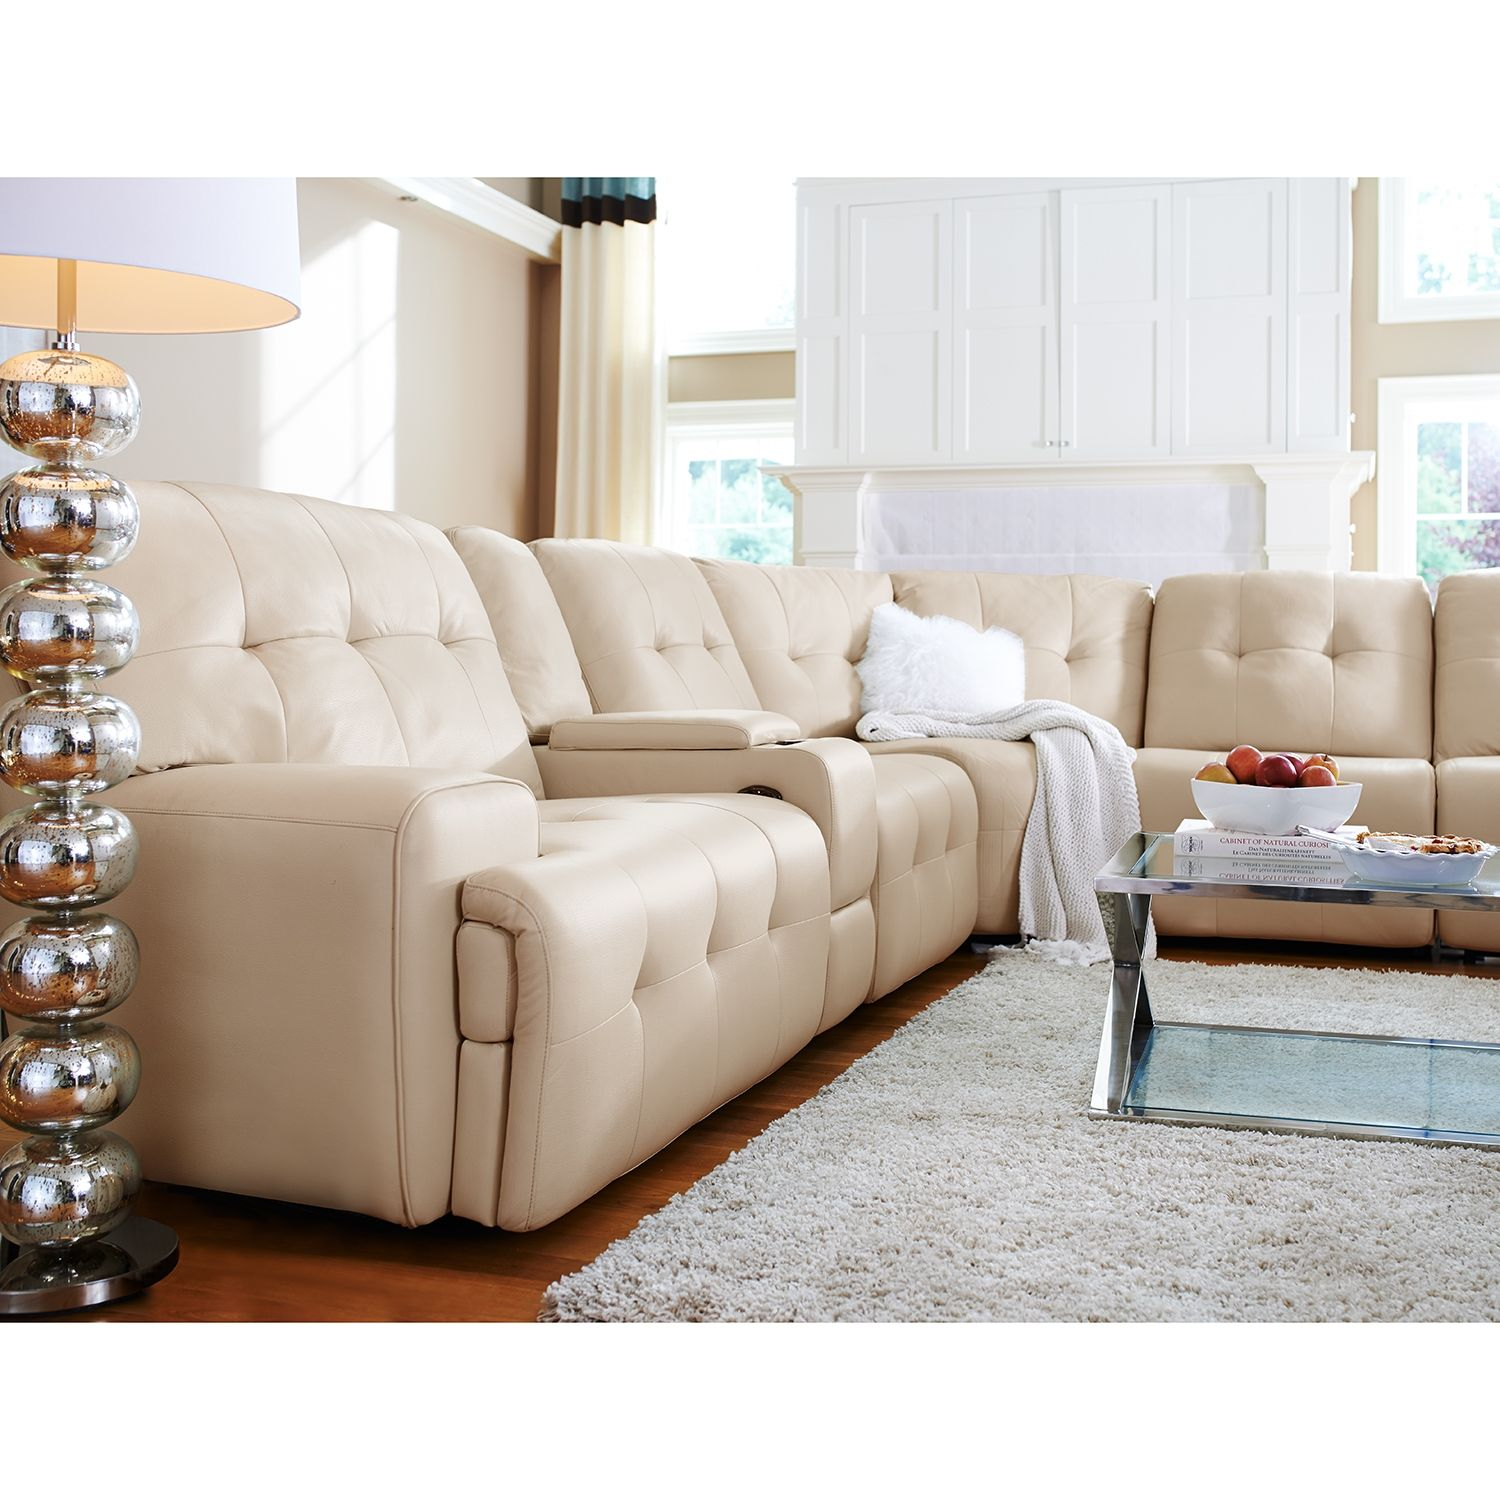 Magellan II 4 Pc Power Reclining Sectional with Music Console